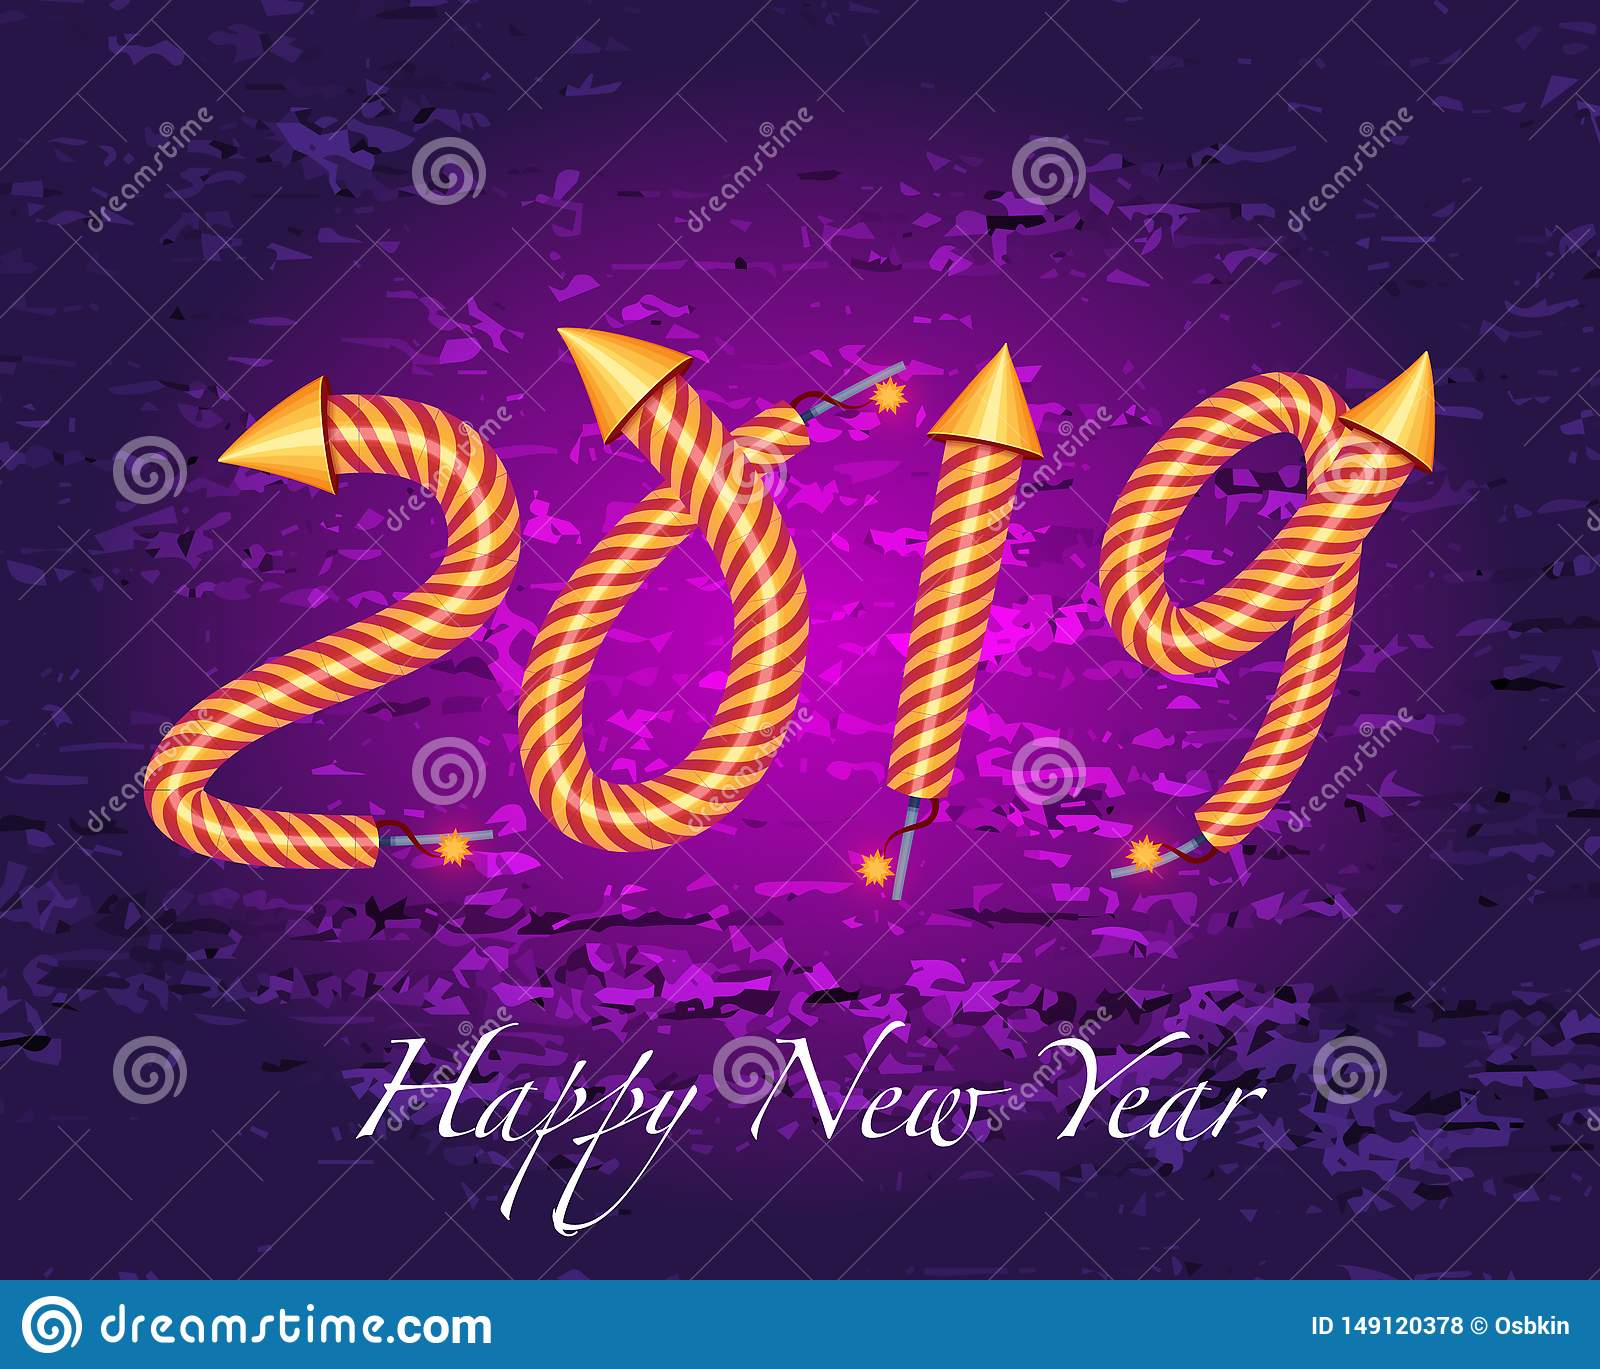 2019  happy new year with rocket fireworks effect